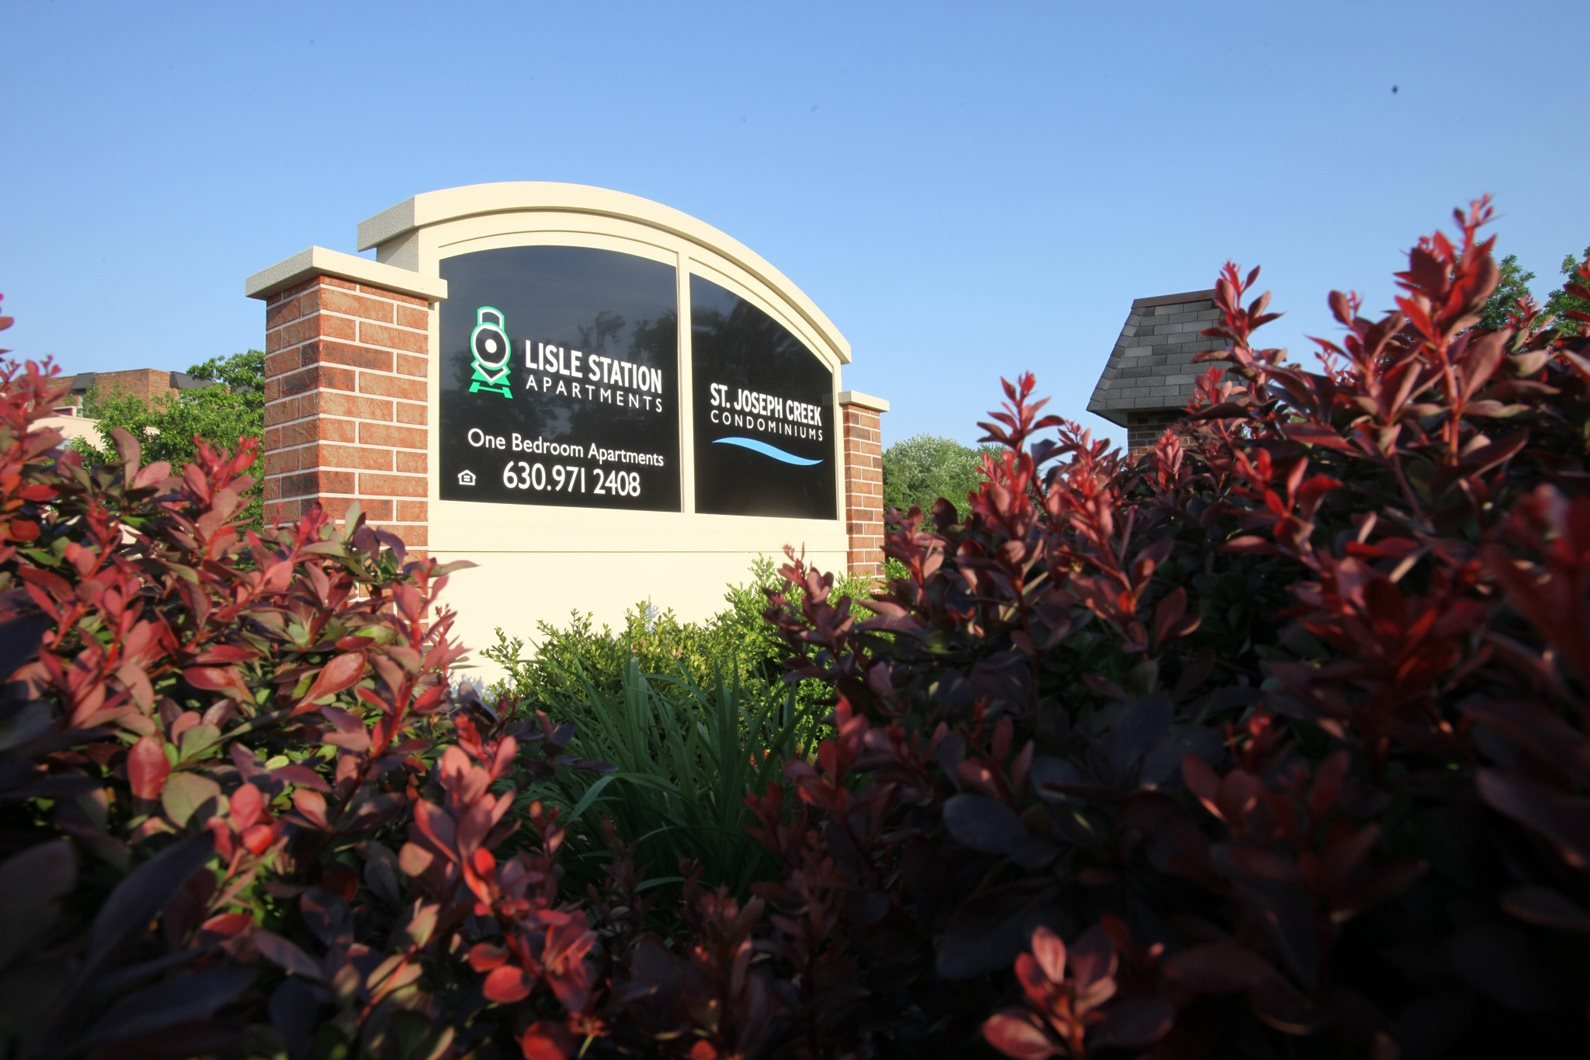 Lisle Station Apartments | Apartments in Lisle, IL